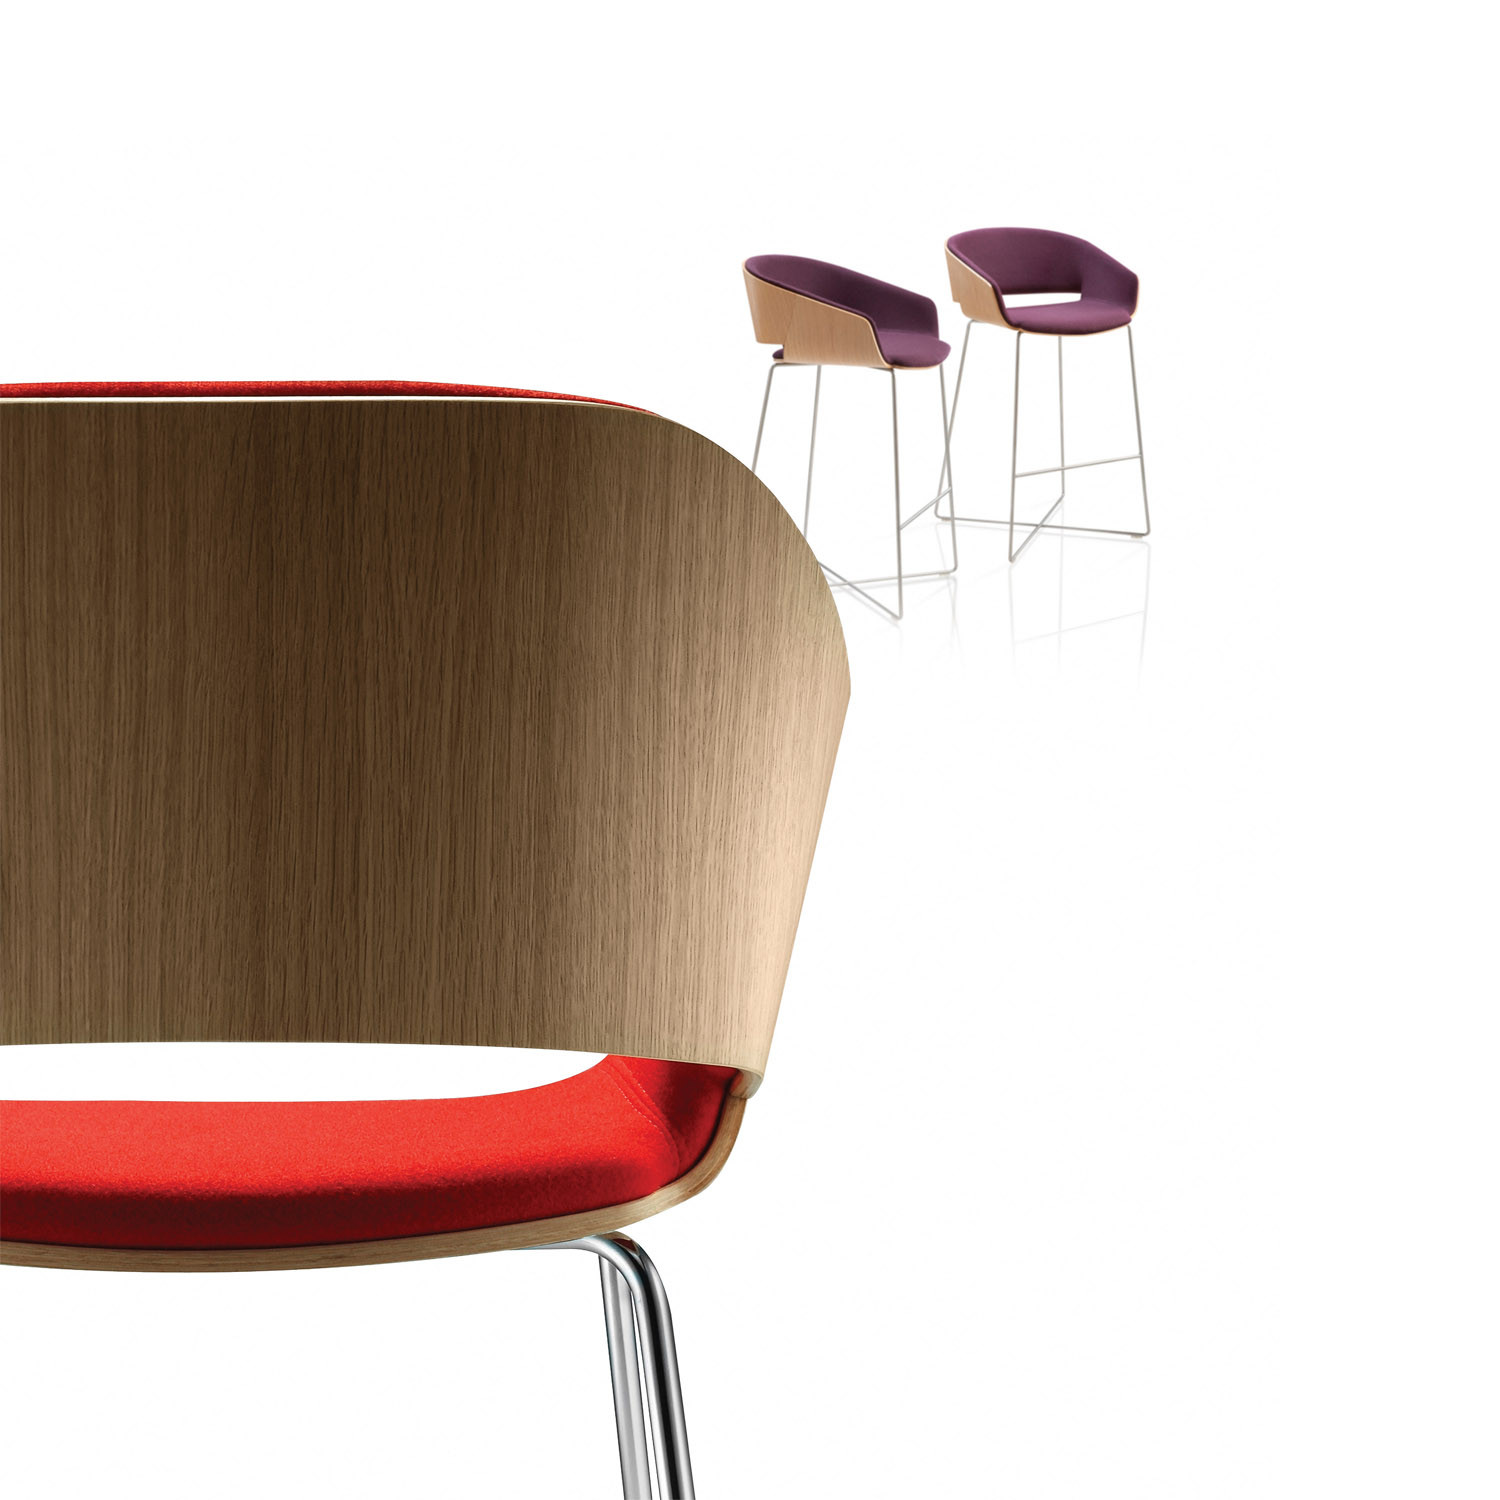 Connection Halo Chairs by David Fox Design